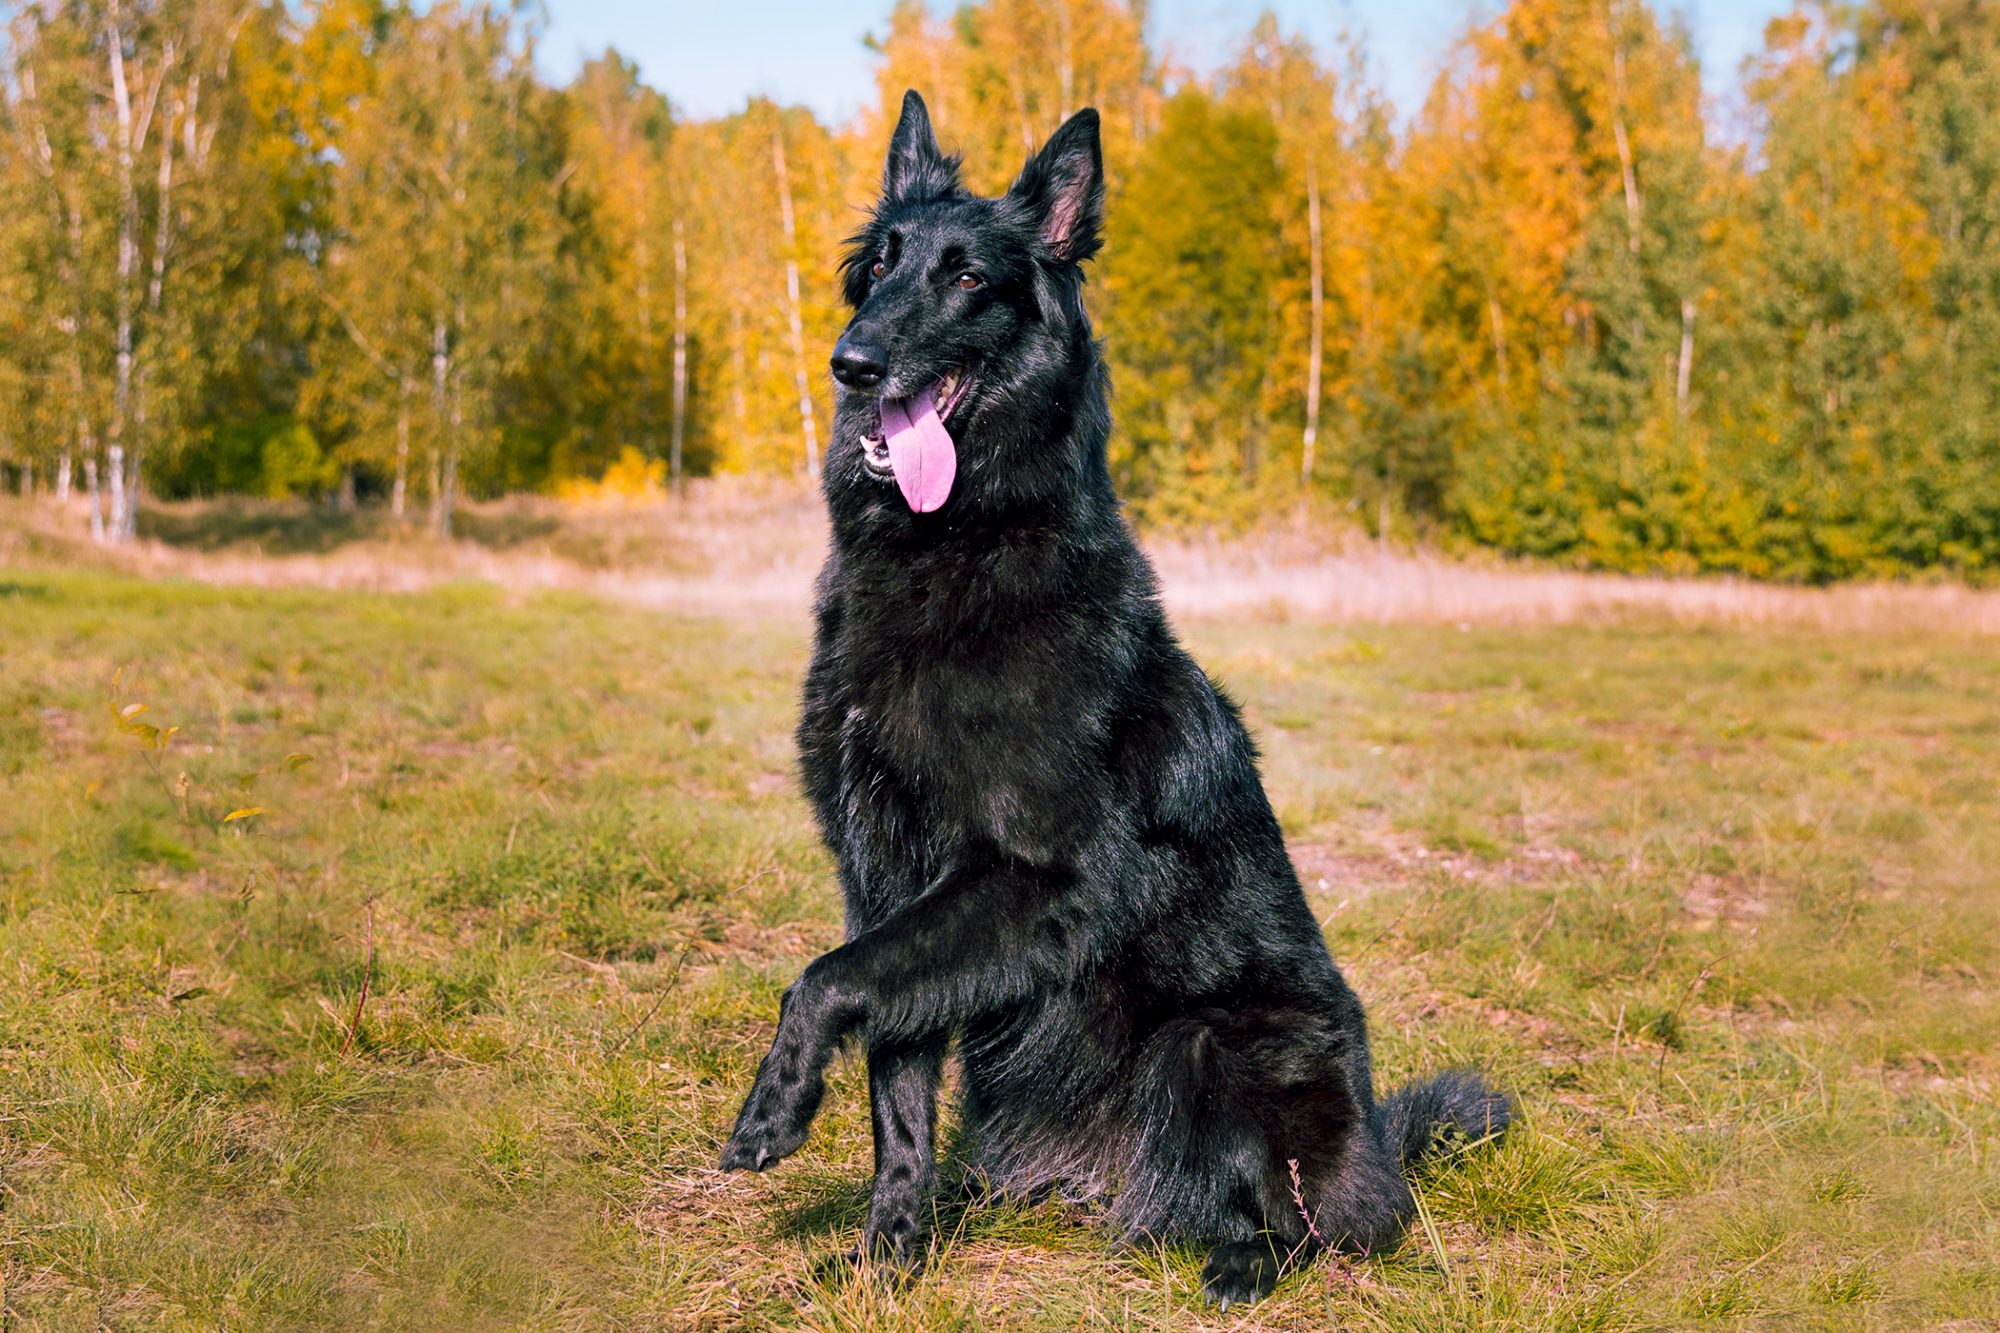 Belgian sheepdog happily pants and raises paw in forest clearing